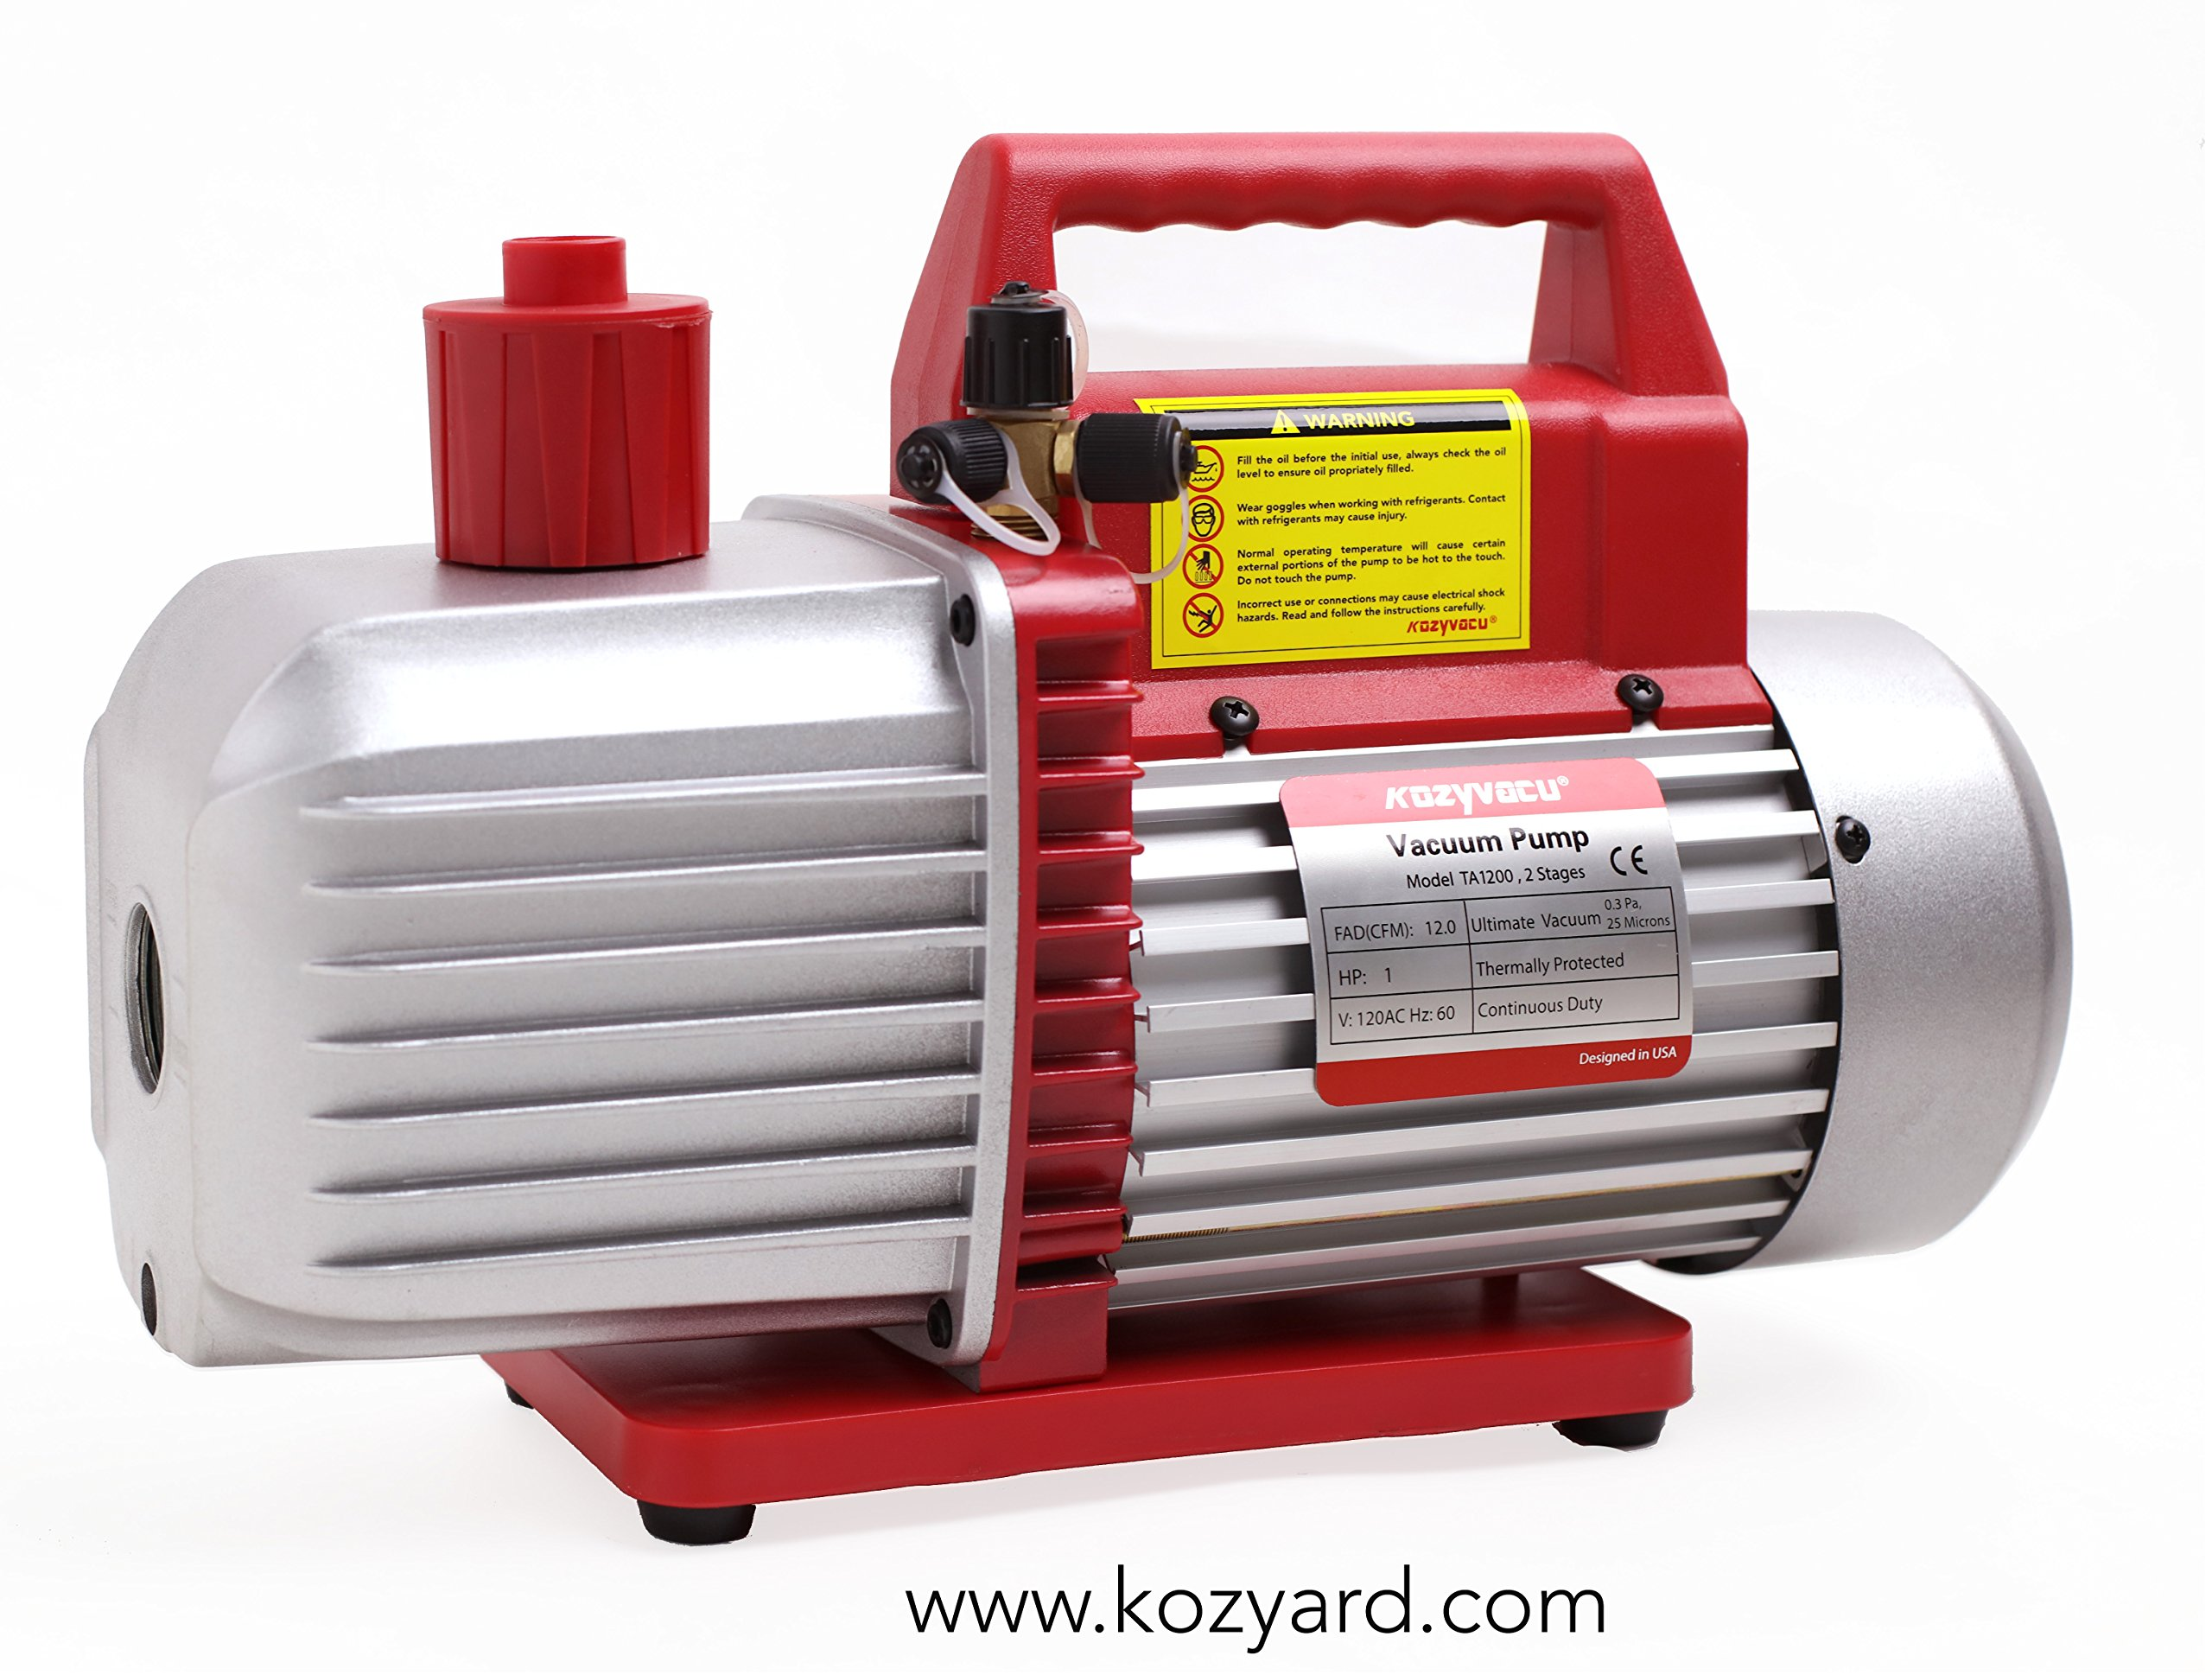 Kozyvacu 12CFM Professional Two-Stage Rotary Vane Professional Vacuum Pump (25 Micron, 1HP) for HVAC/Auto AC Refrigerant Recharging, Degassing Wine or Epoxy, Milking cow or lamb, Food processing etc.